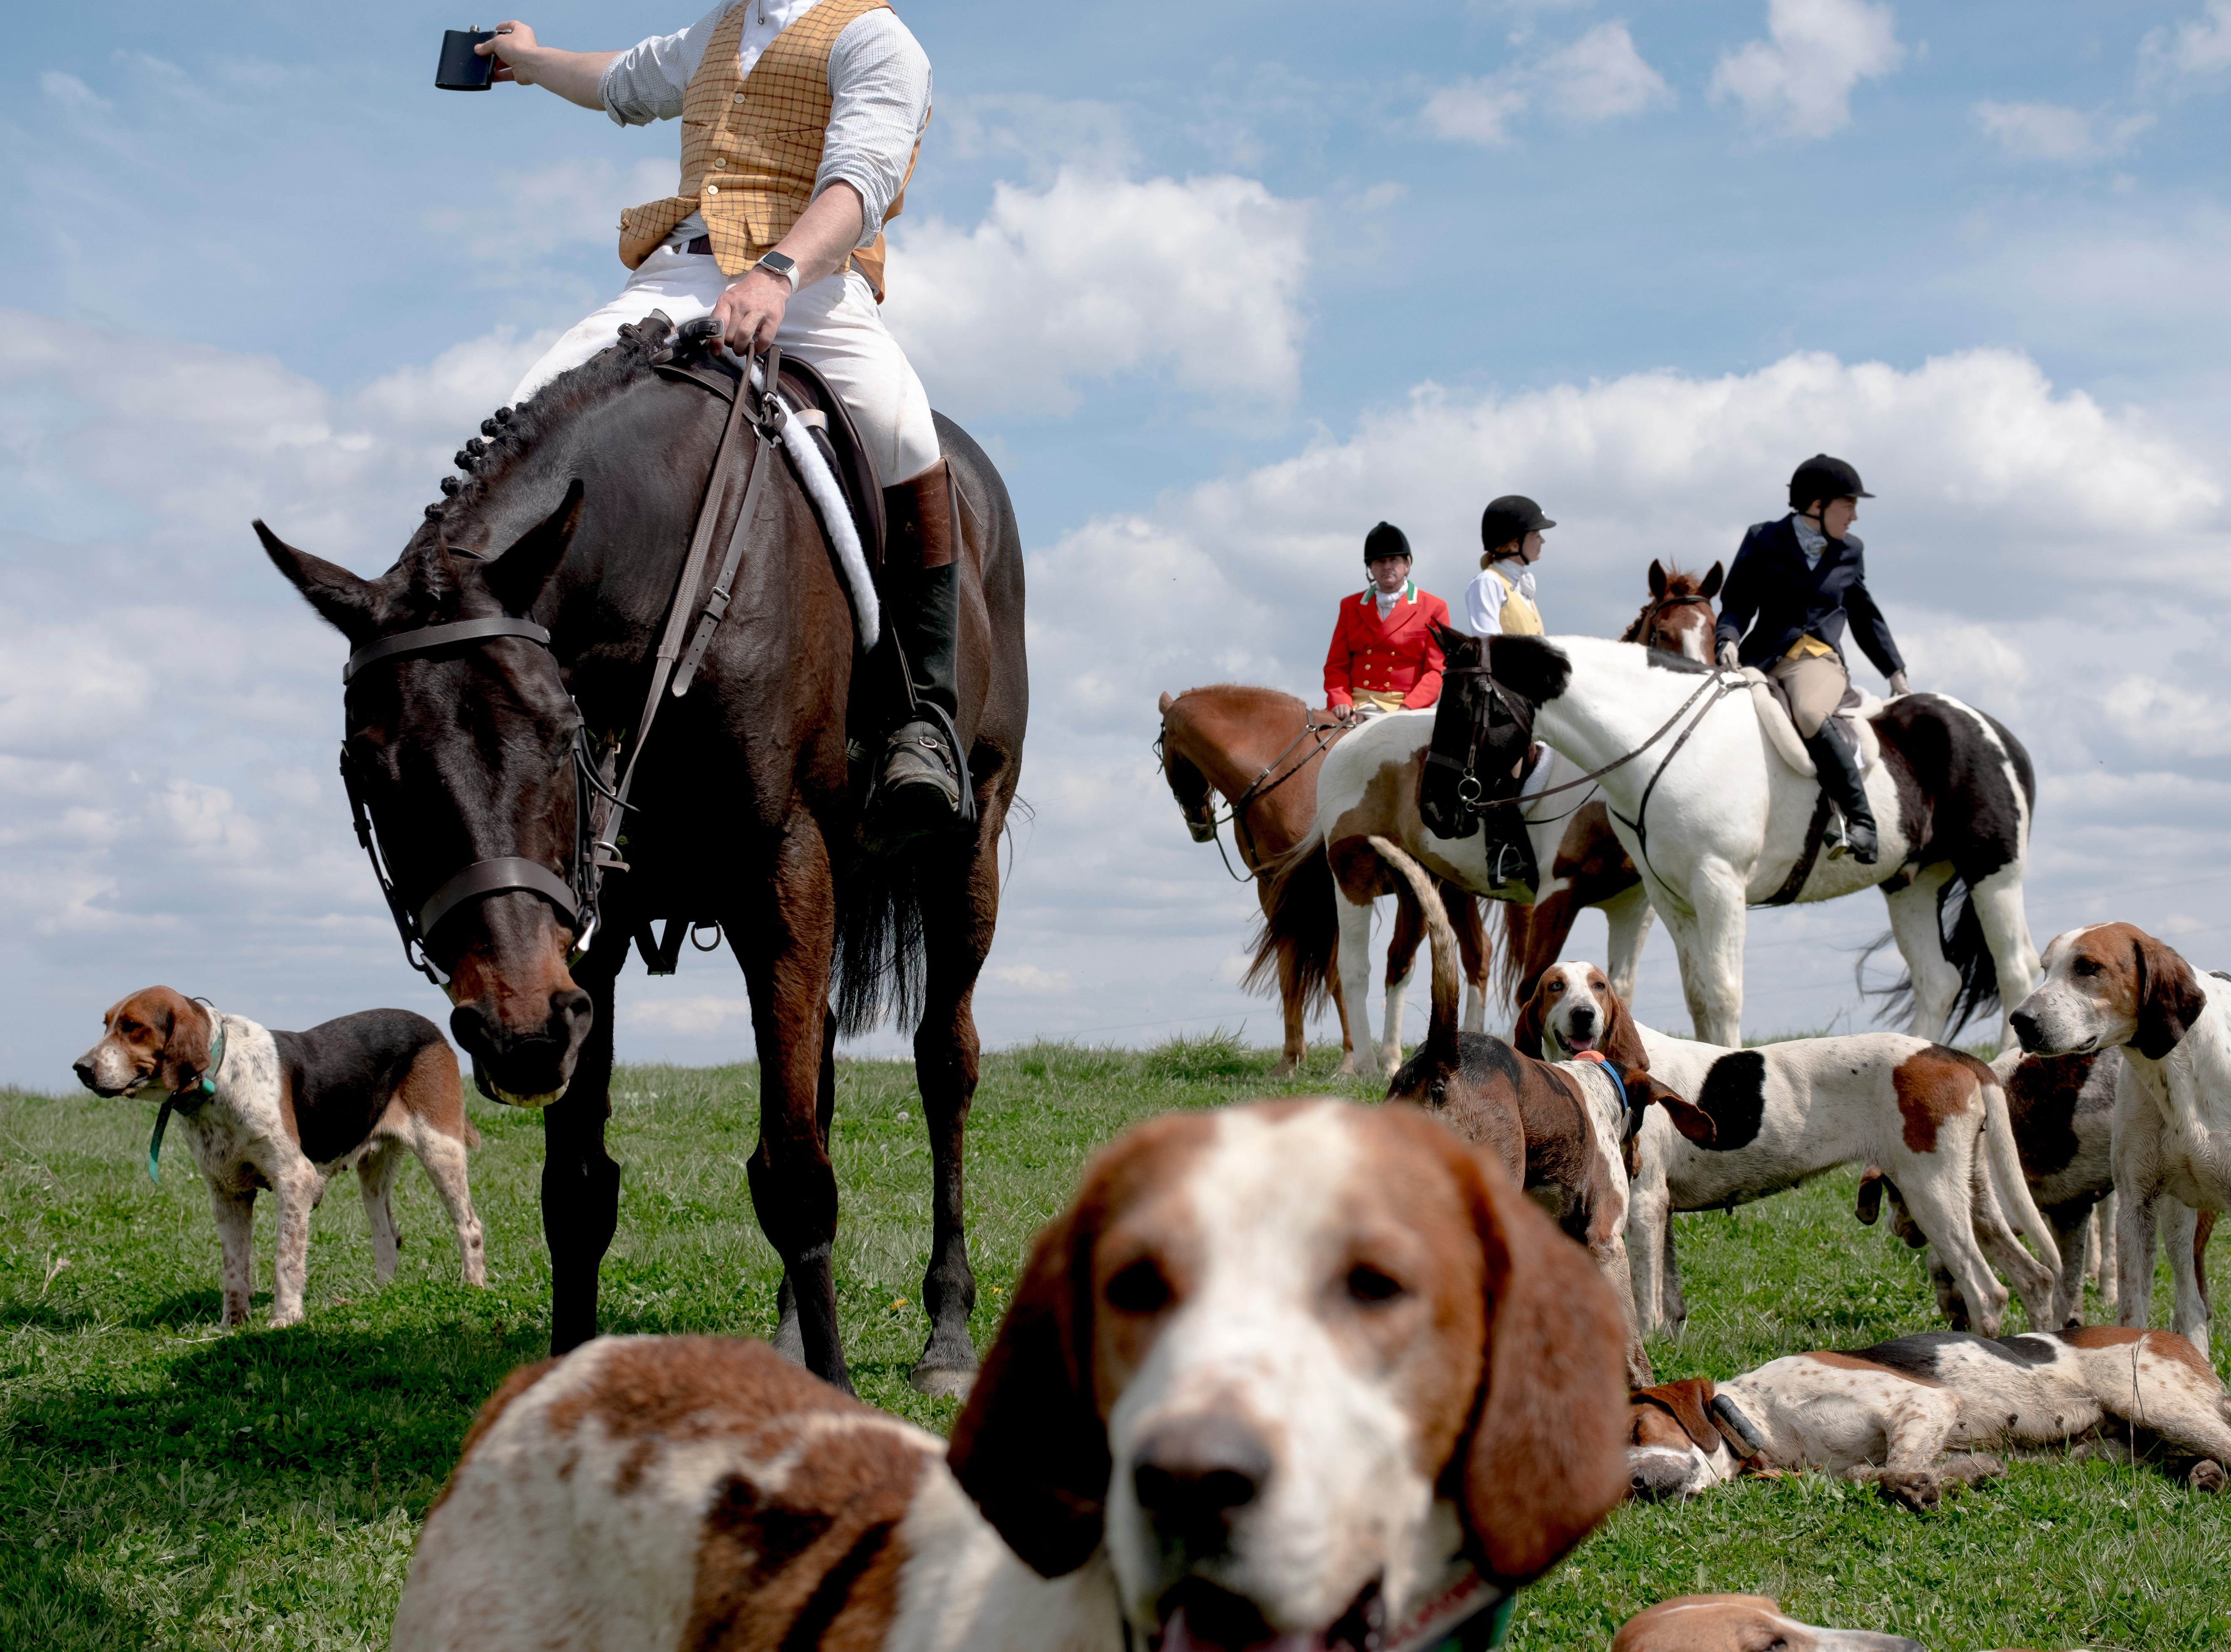 Fox hunters take a break in a meadow during a fixture at Blackberry Ridge Farm in Greeneville, Tennessee on Saturday, March 30, 2019.